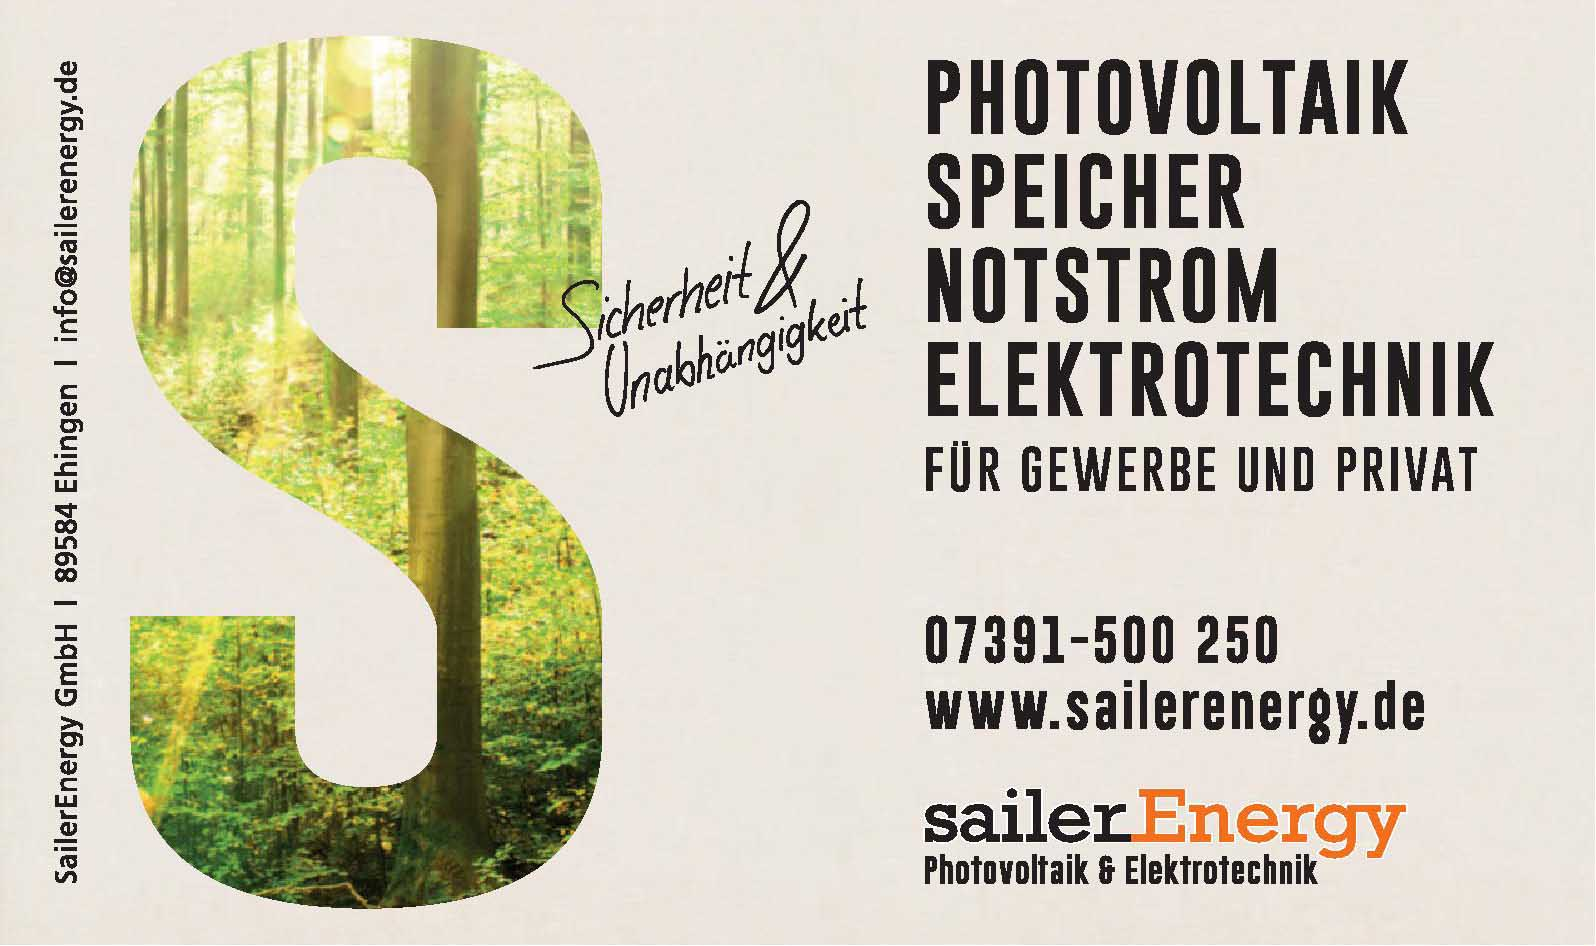 SailerEnergy GmbH